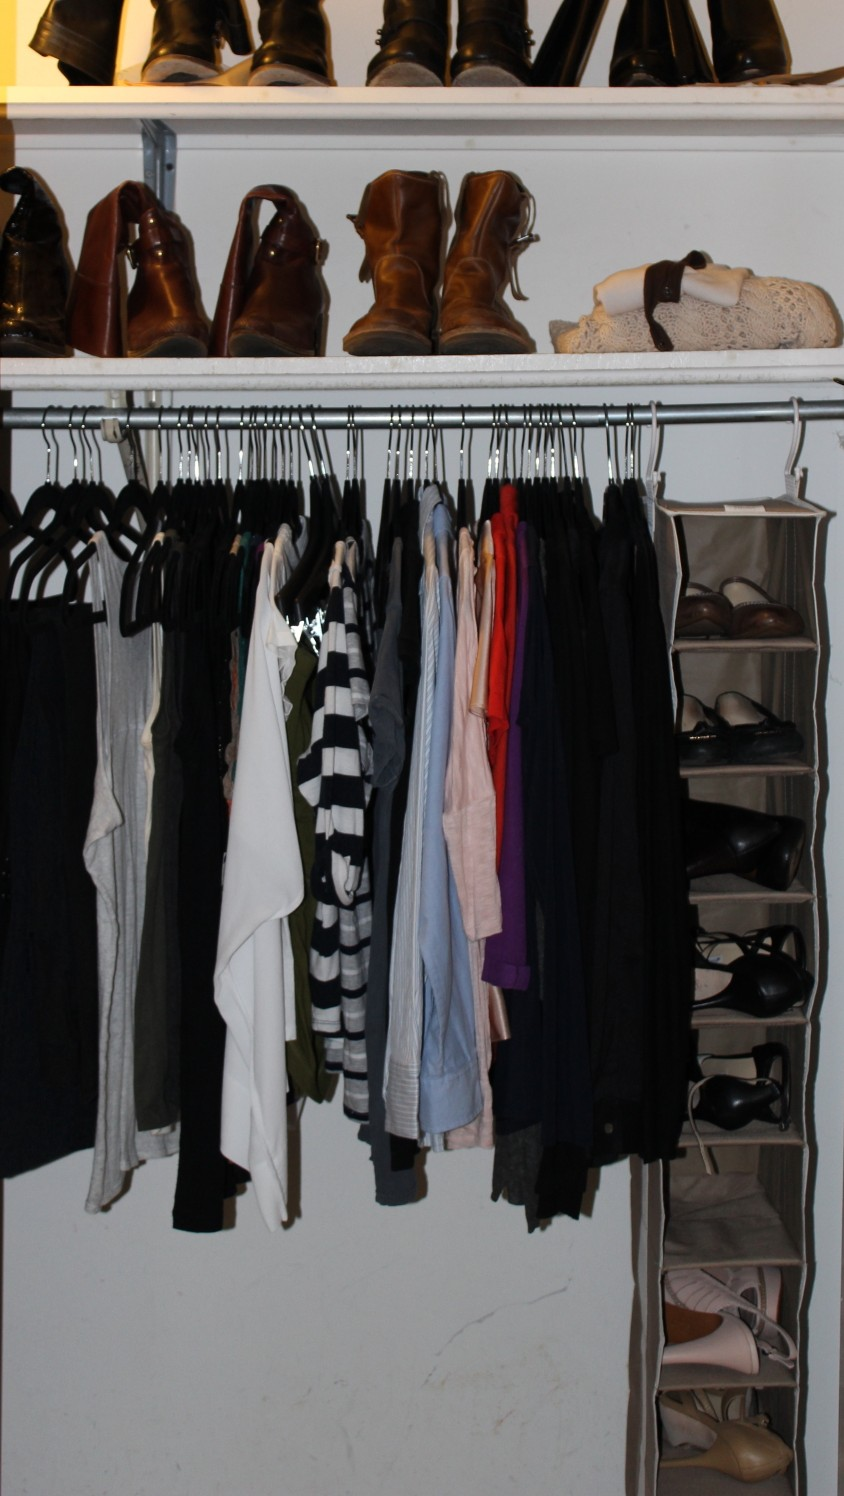 Heidi's closet after